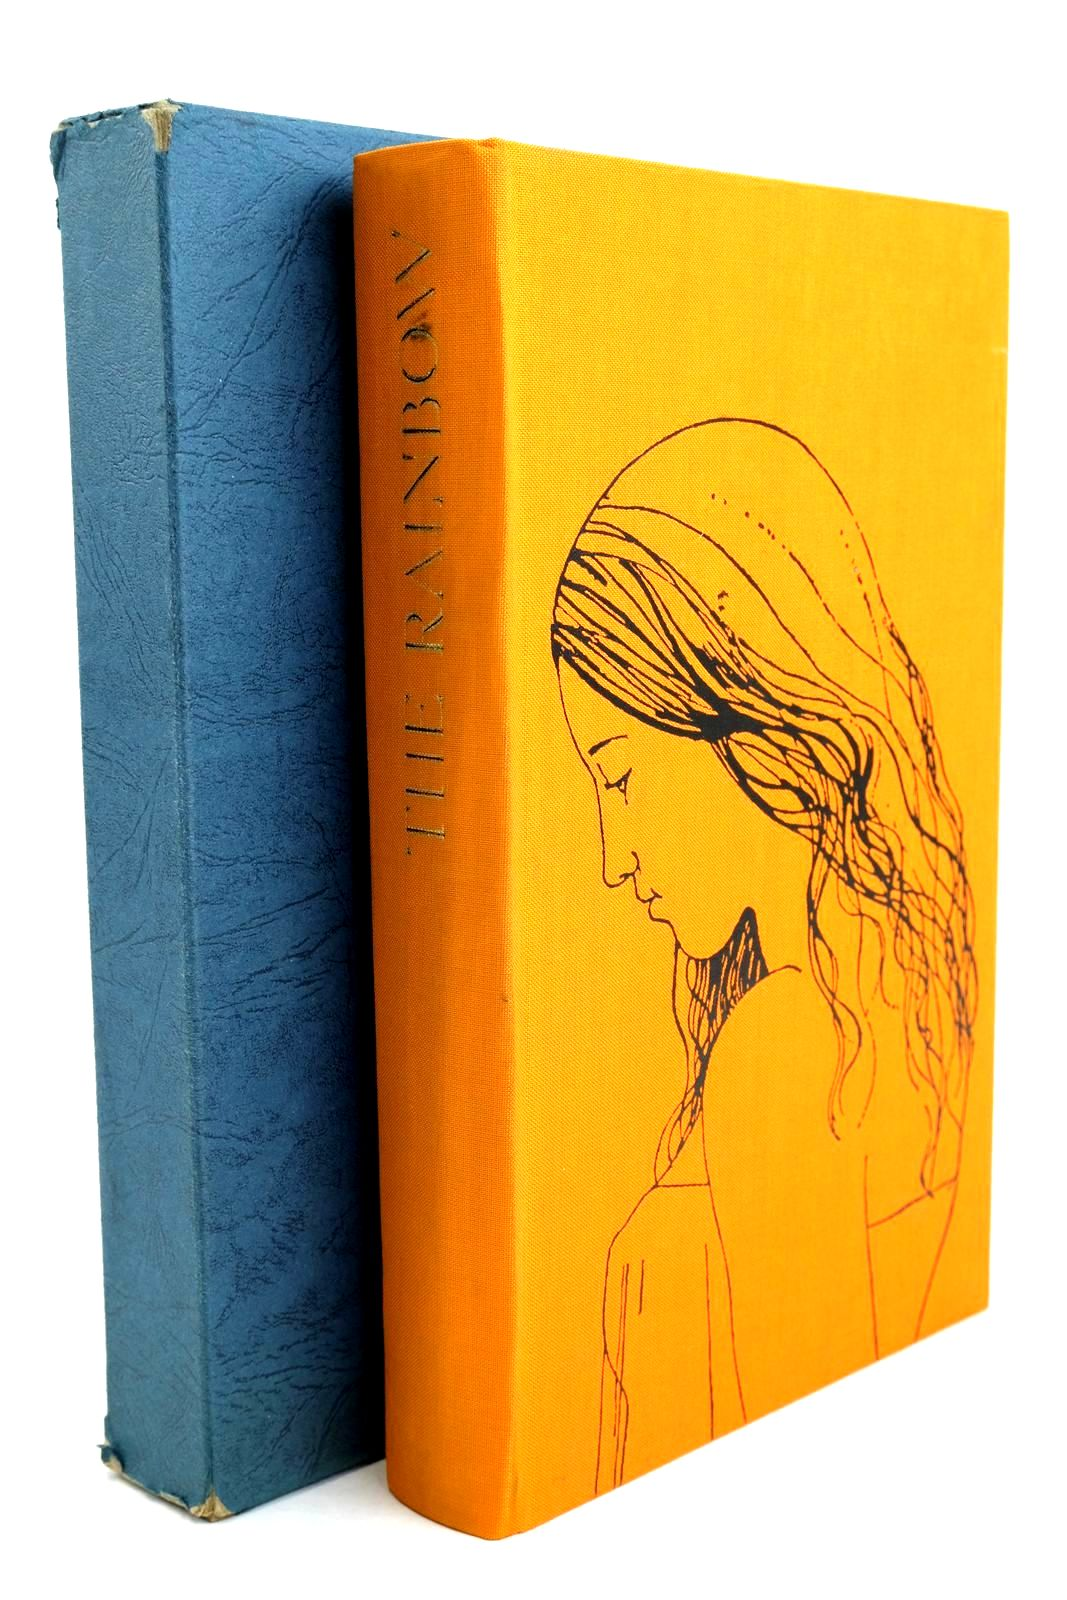 Photo of THE RAINBOW written by Lawrence, D.H. illustrated by Raymond, Charles published by Folio Society (STOCK CODE: 1320540)  for sale by Stella & Rose's Books